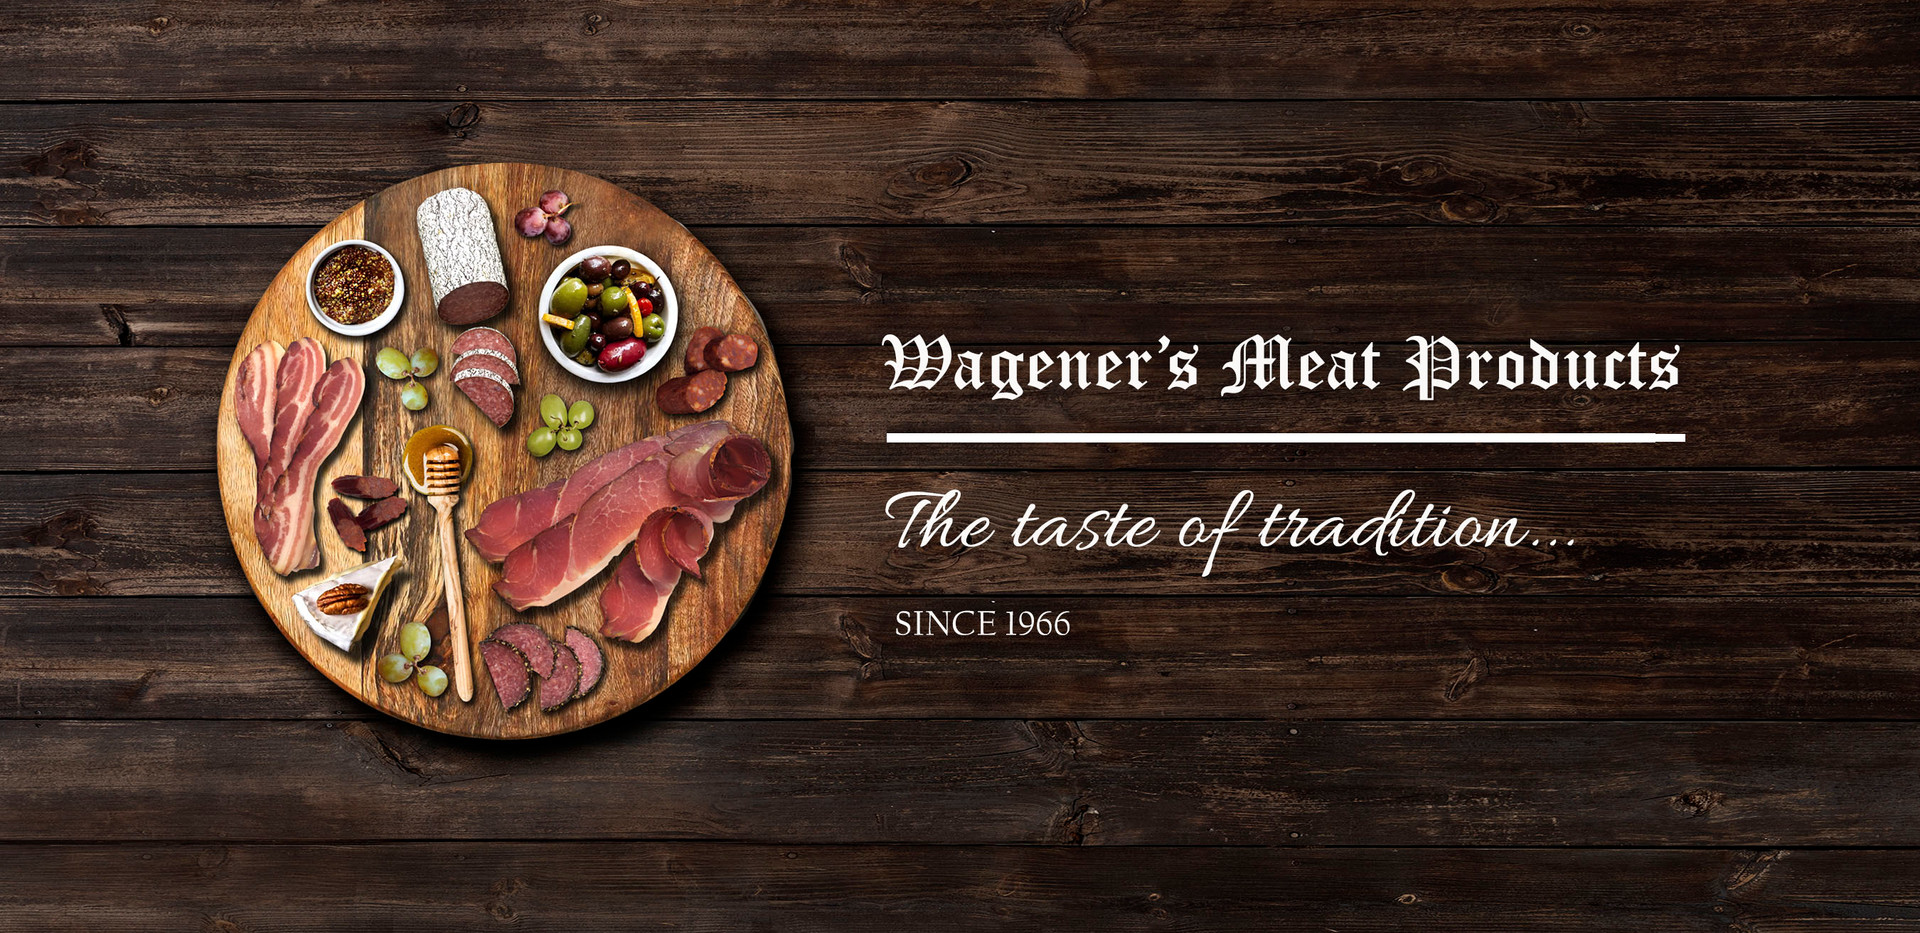 Wageners Specialty Smoked Products